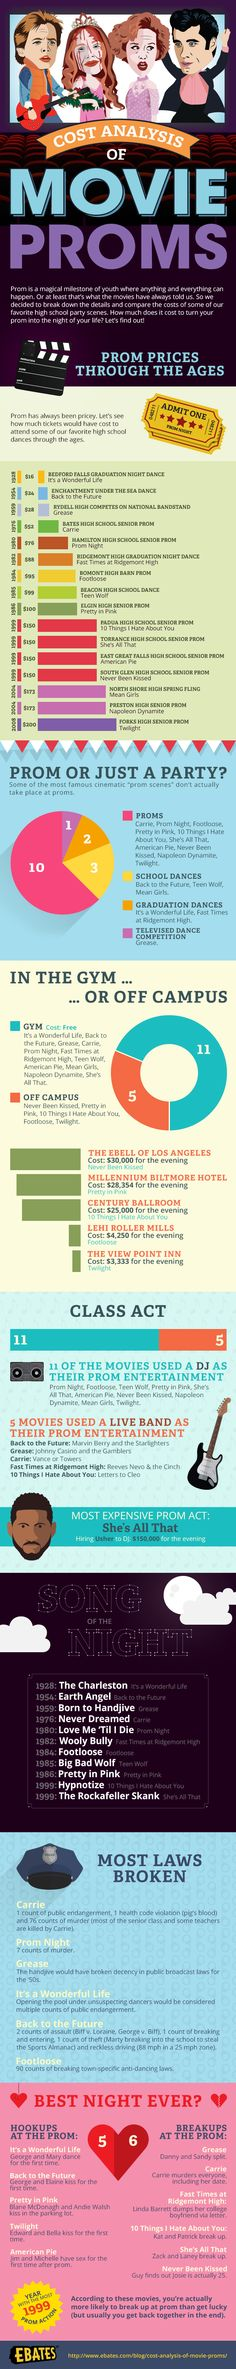 Prom - It's the most magical time in a teenager's life. Or at least it's supposed to be. More often than not, prom night ends with lame decorations, dashed expectations and nasty hangovers. But there's one place where prom night is always as awesome and epic as it is in your imagination: the movies. The following infographic from Ebates looks at the costs behind our favorite movie proms, including Carrie, Never Been Kissed, and more.